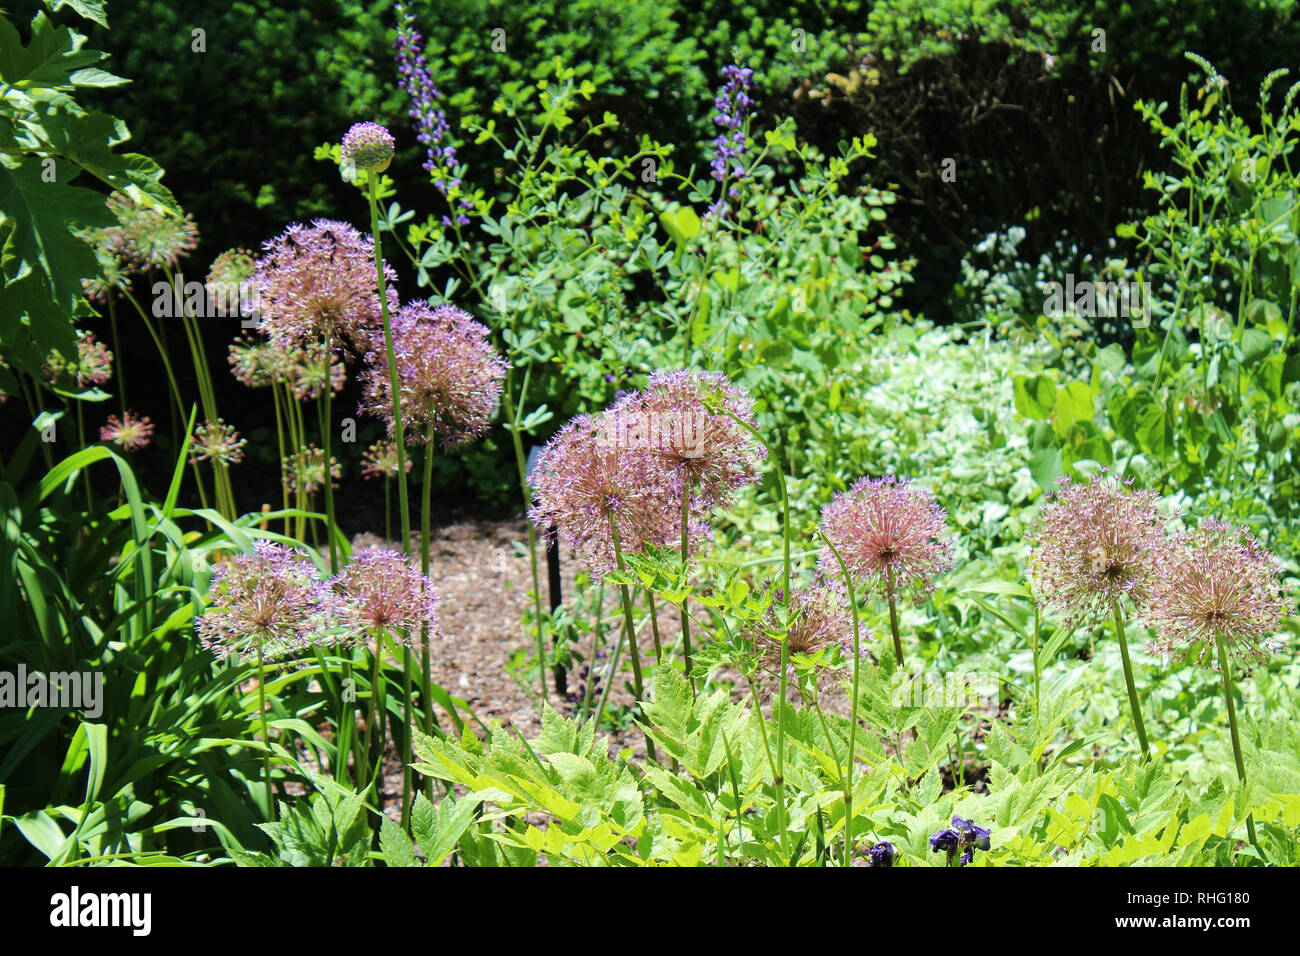 A cluster of Allium growing in a landscaped garden in Cantigny Park in Wheaton, Illinois in the spring - Stock Image